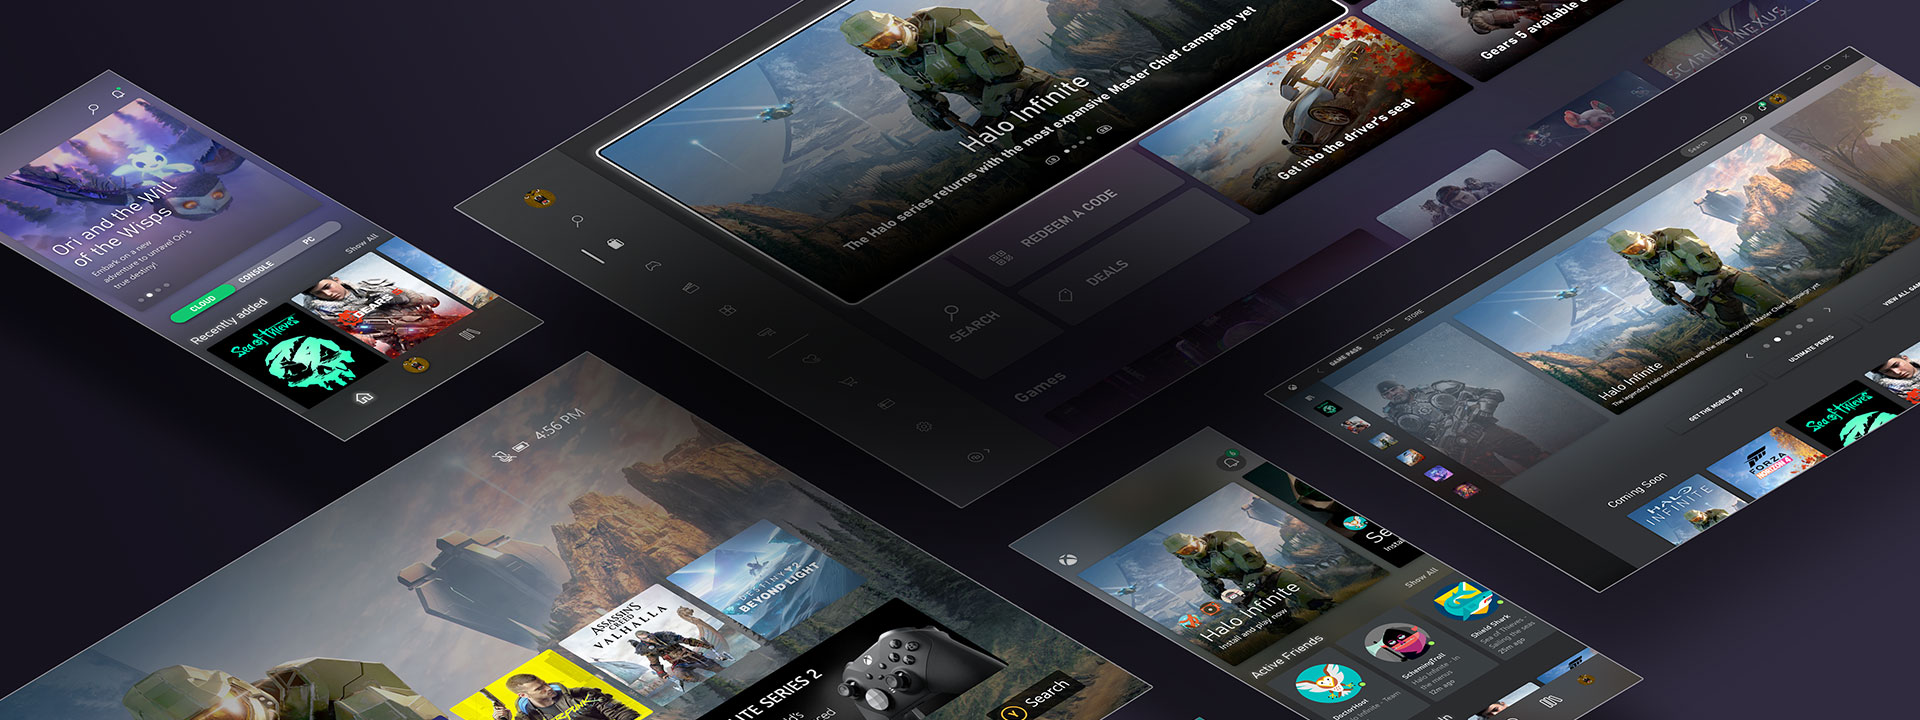 A collection of screenshots showcasing the Xbox experience across devices.